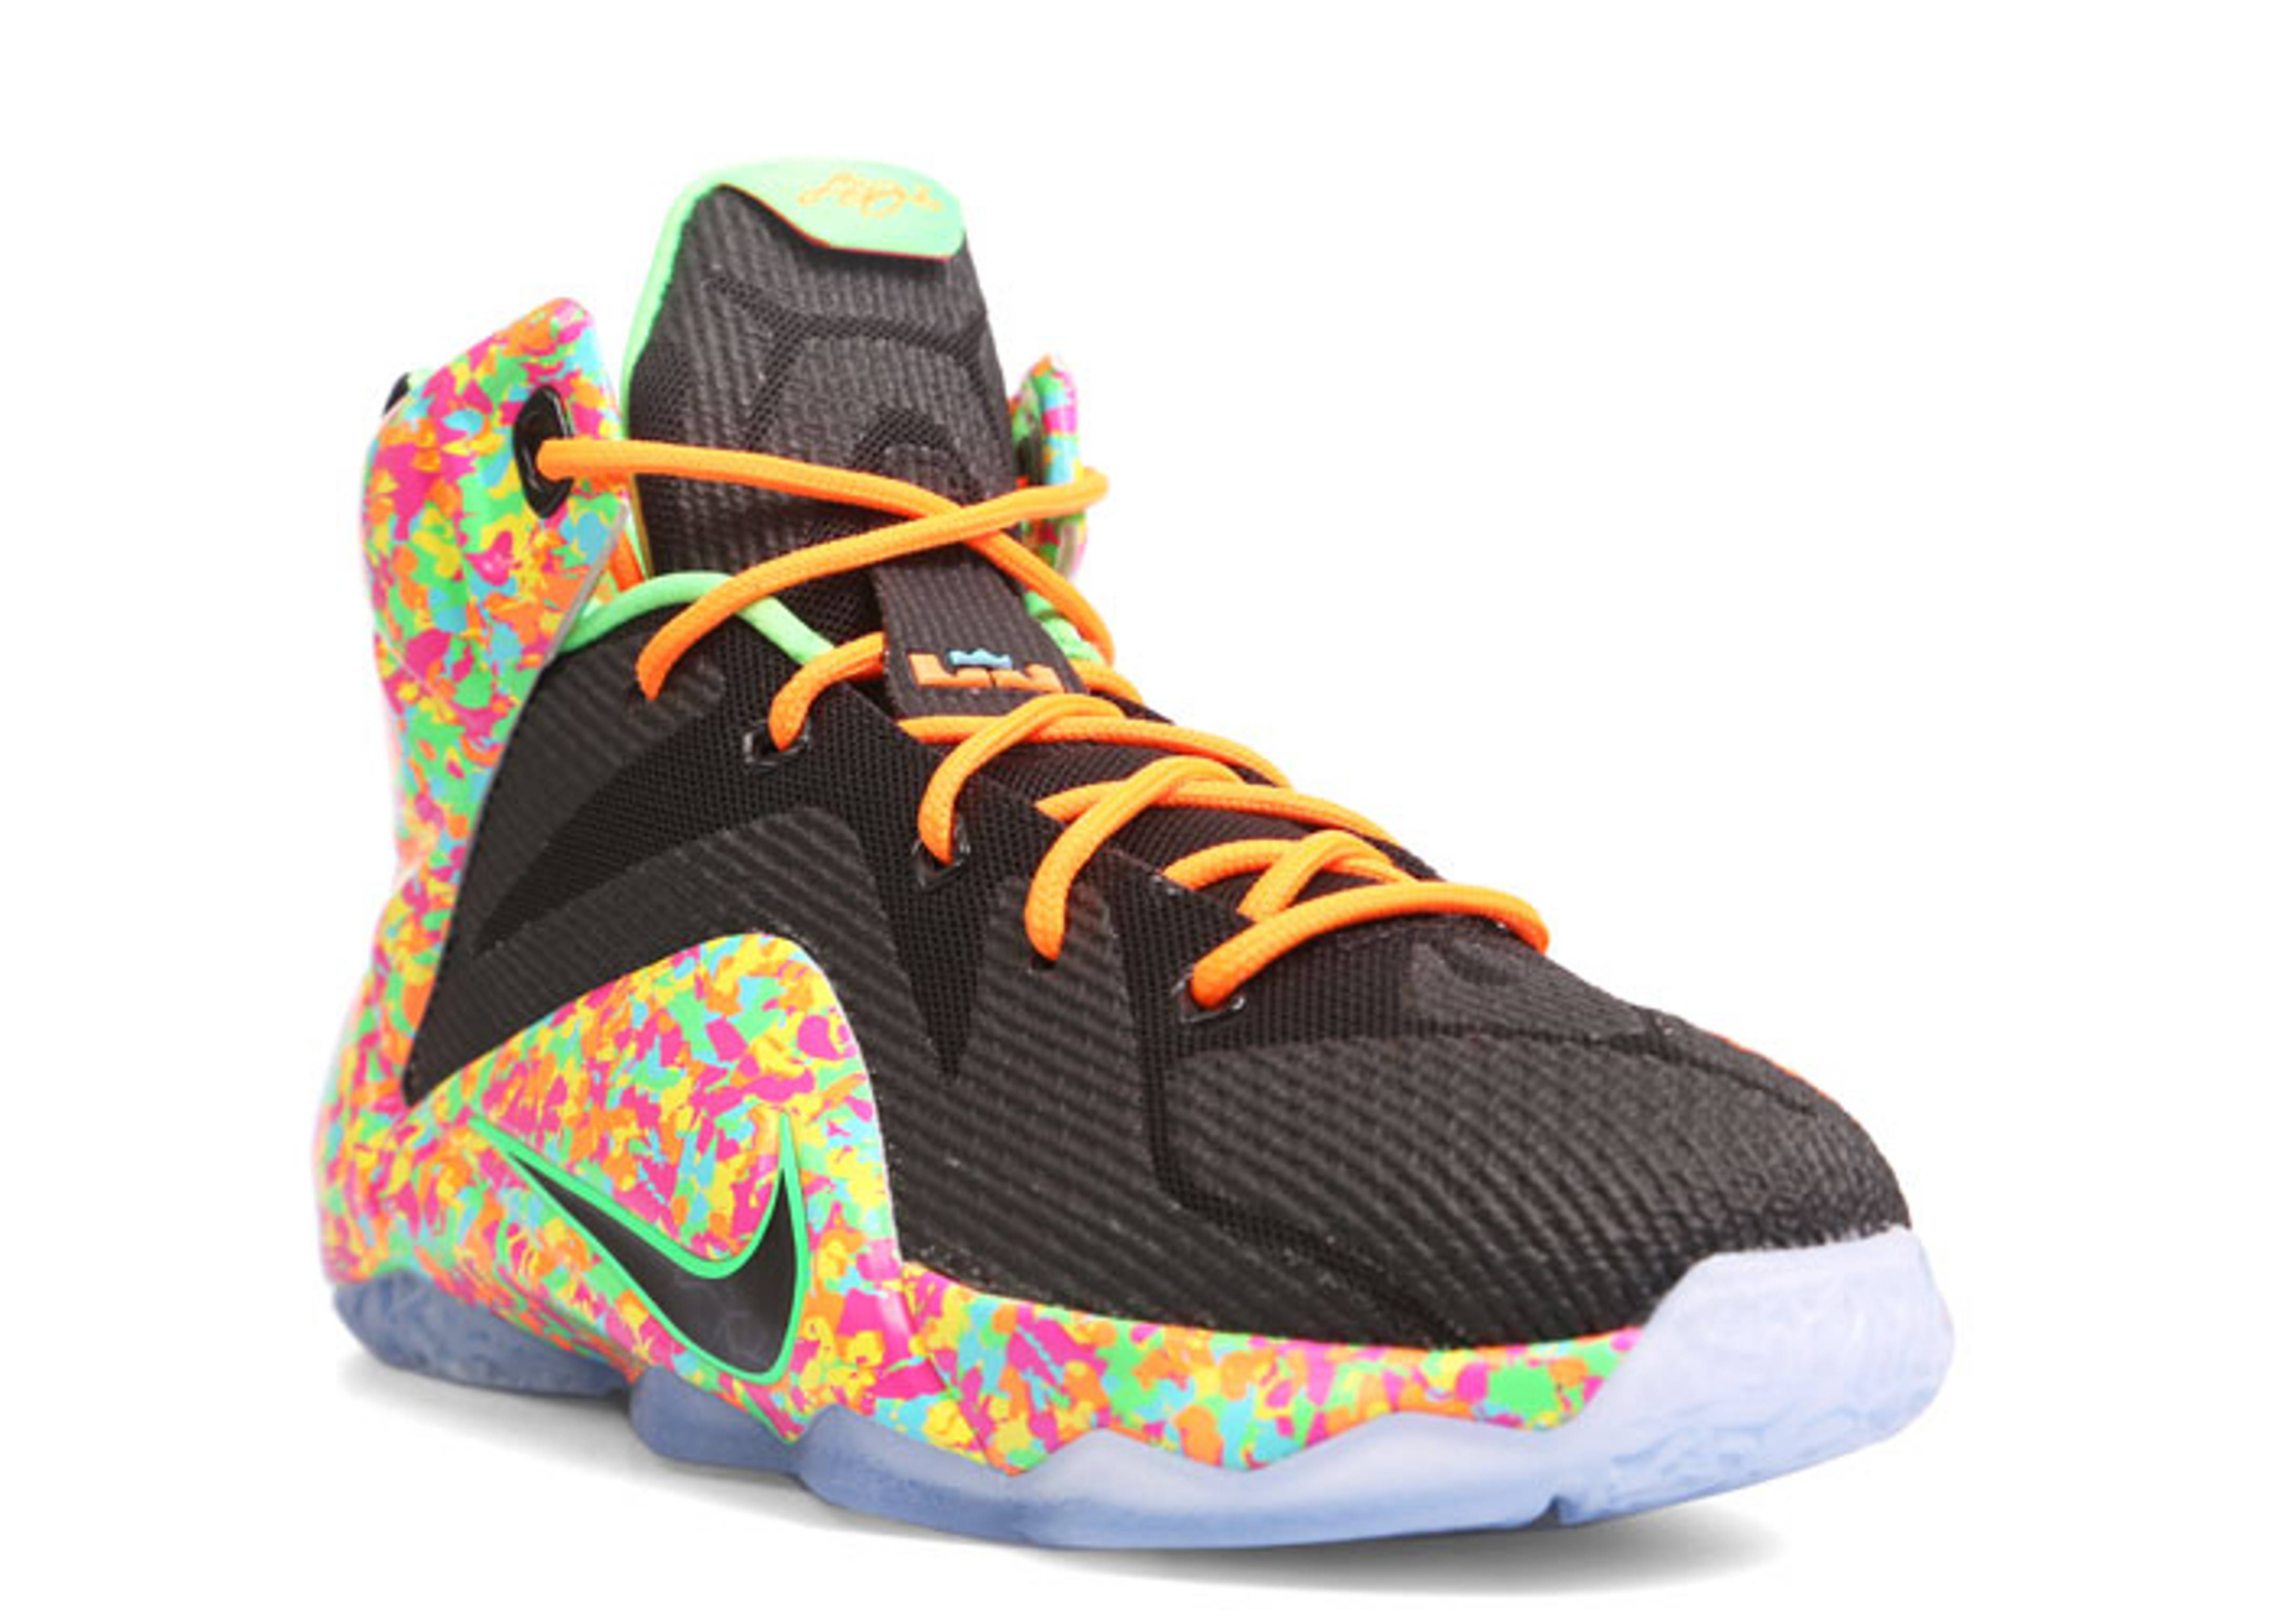 new product 4d925 c87cc promo code for lebron 12 fruity pebbles brown b834e be298